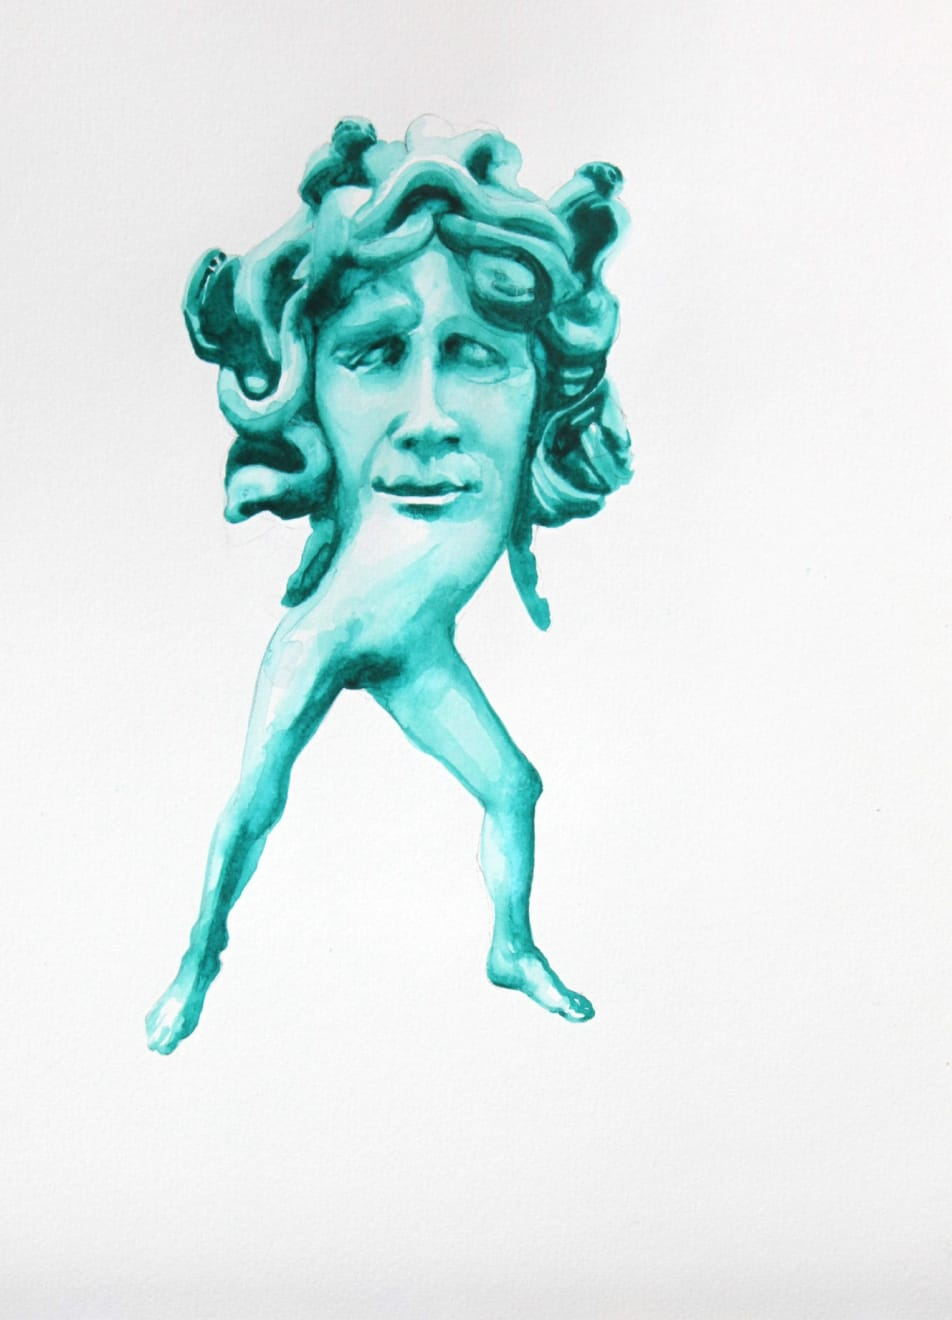 Kirsty Whiten, Mother Medusa, 2019, Watercolour, 35 x 25 cm